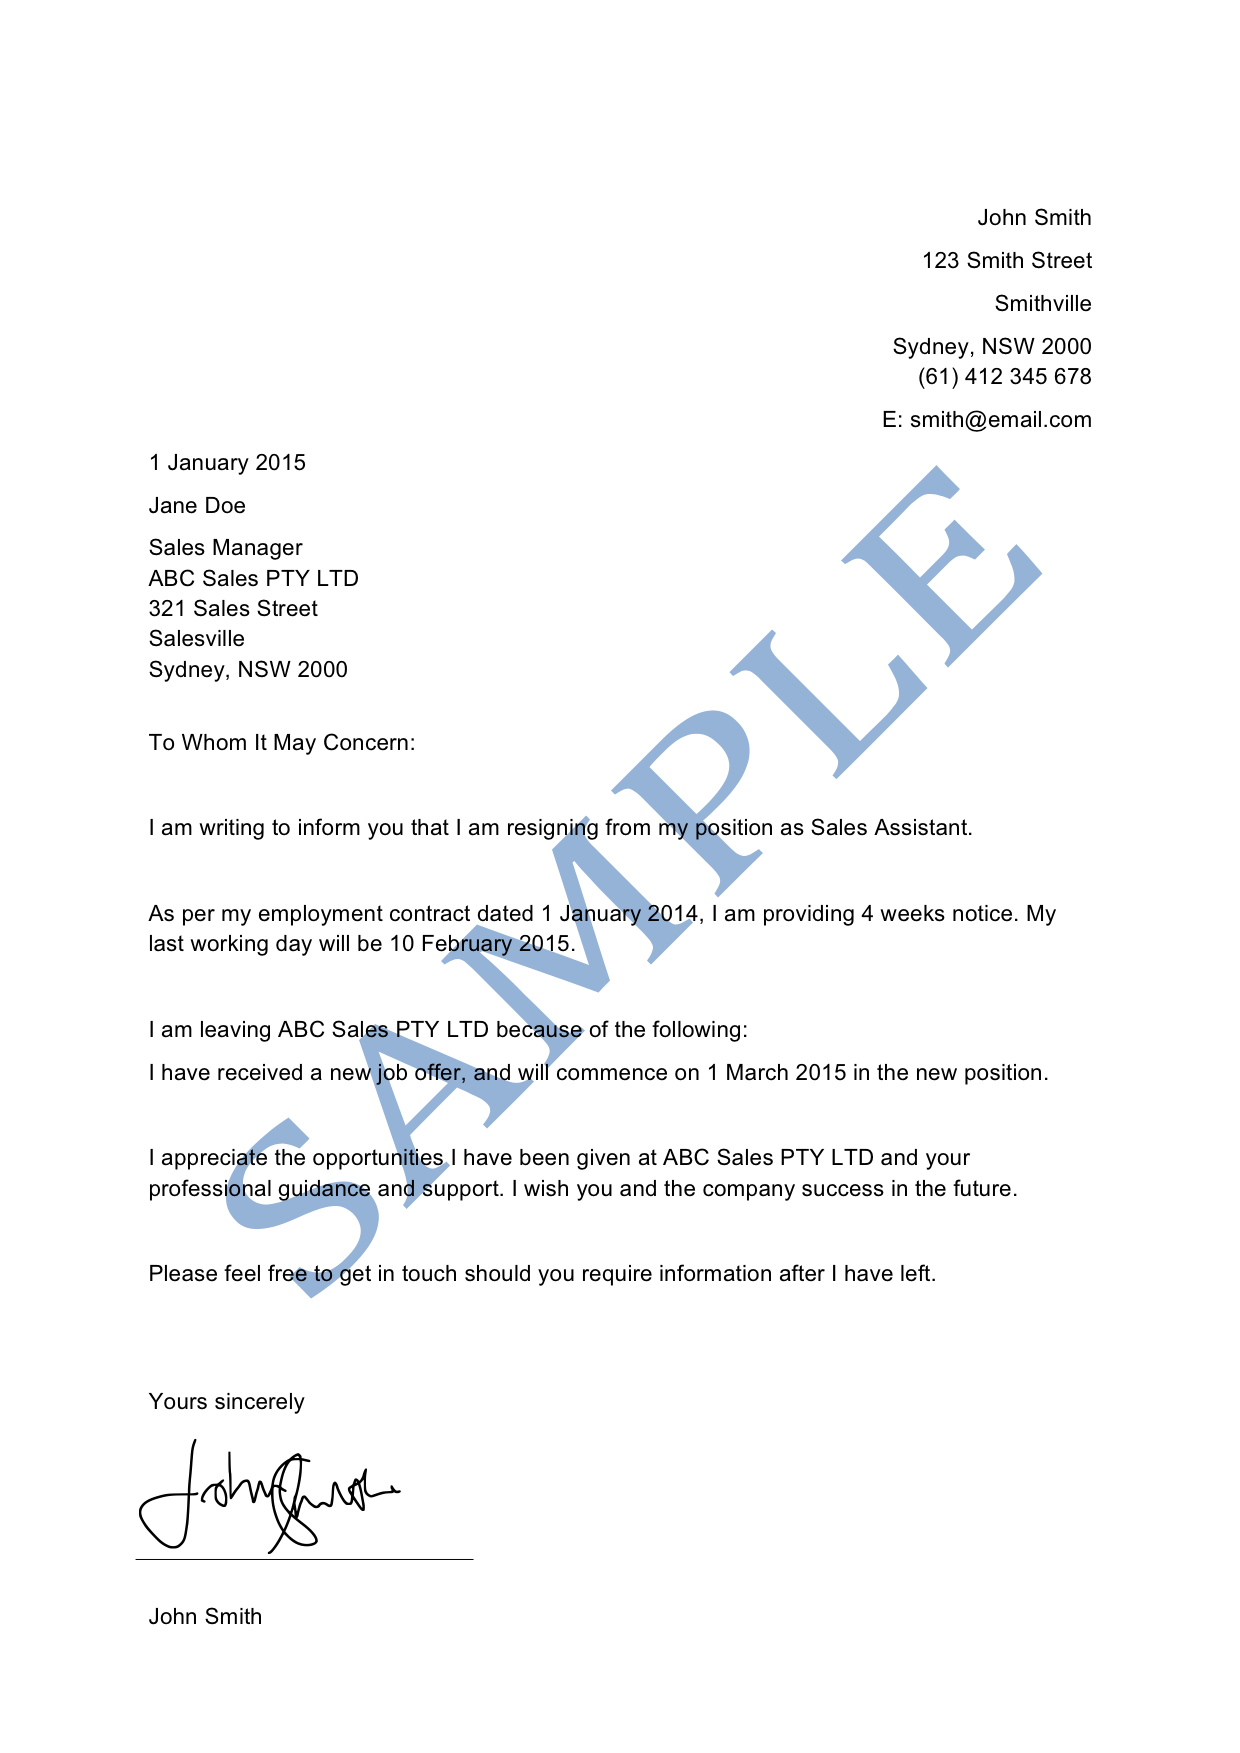 letter of resignation sample lawpath what does the letter of resignation cover